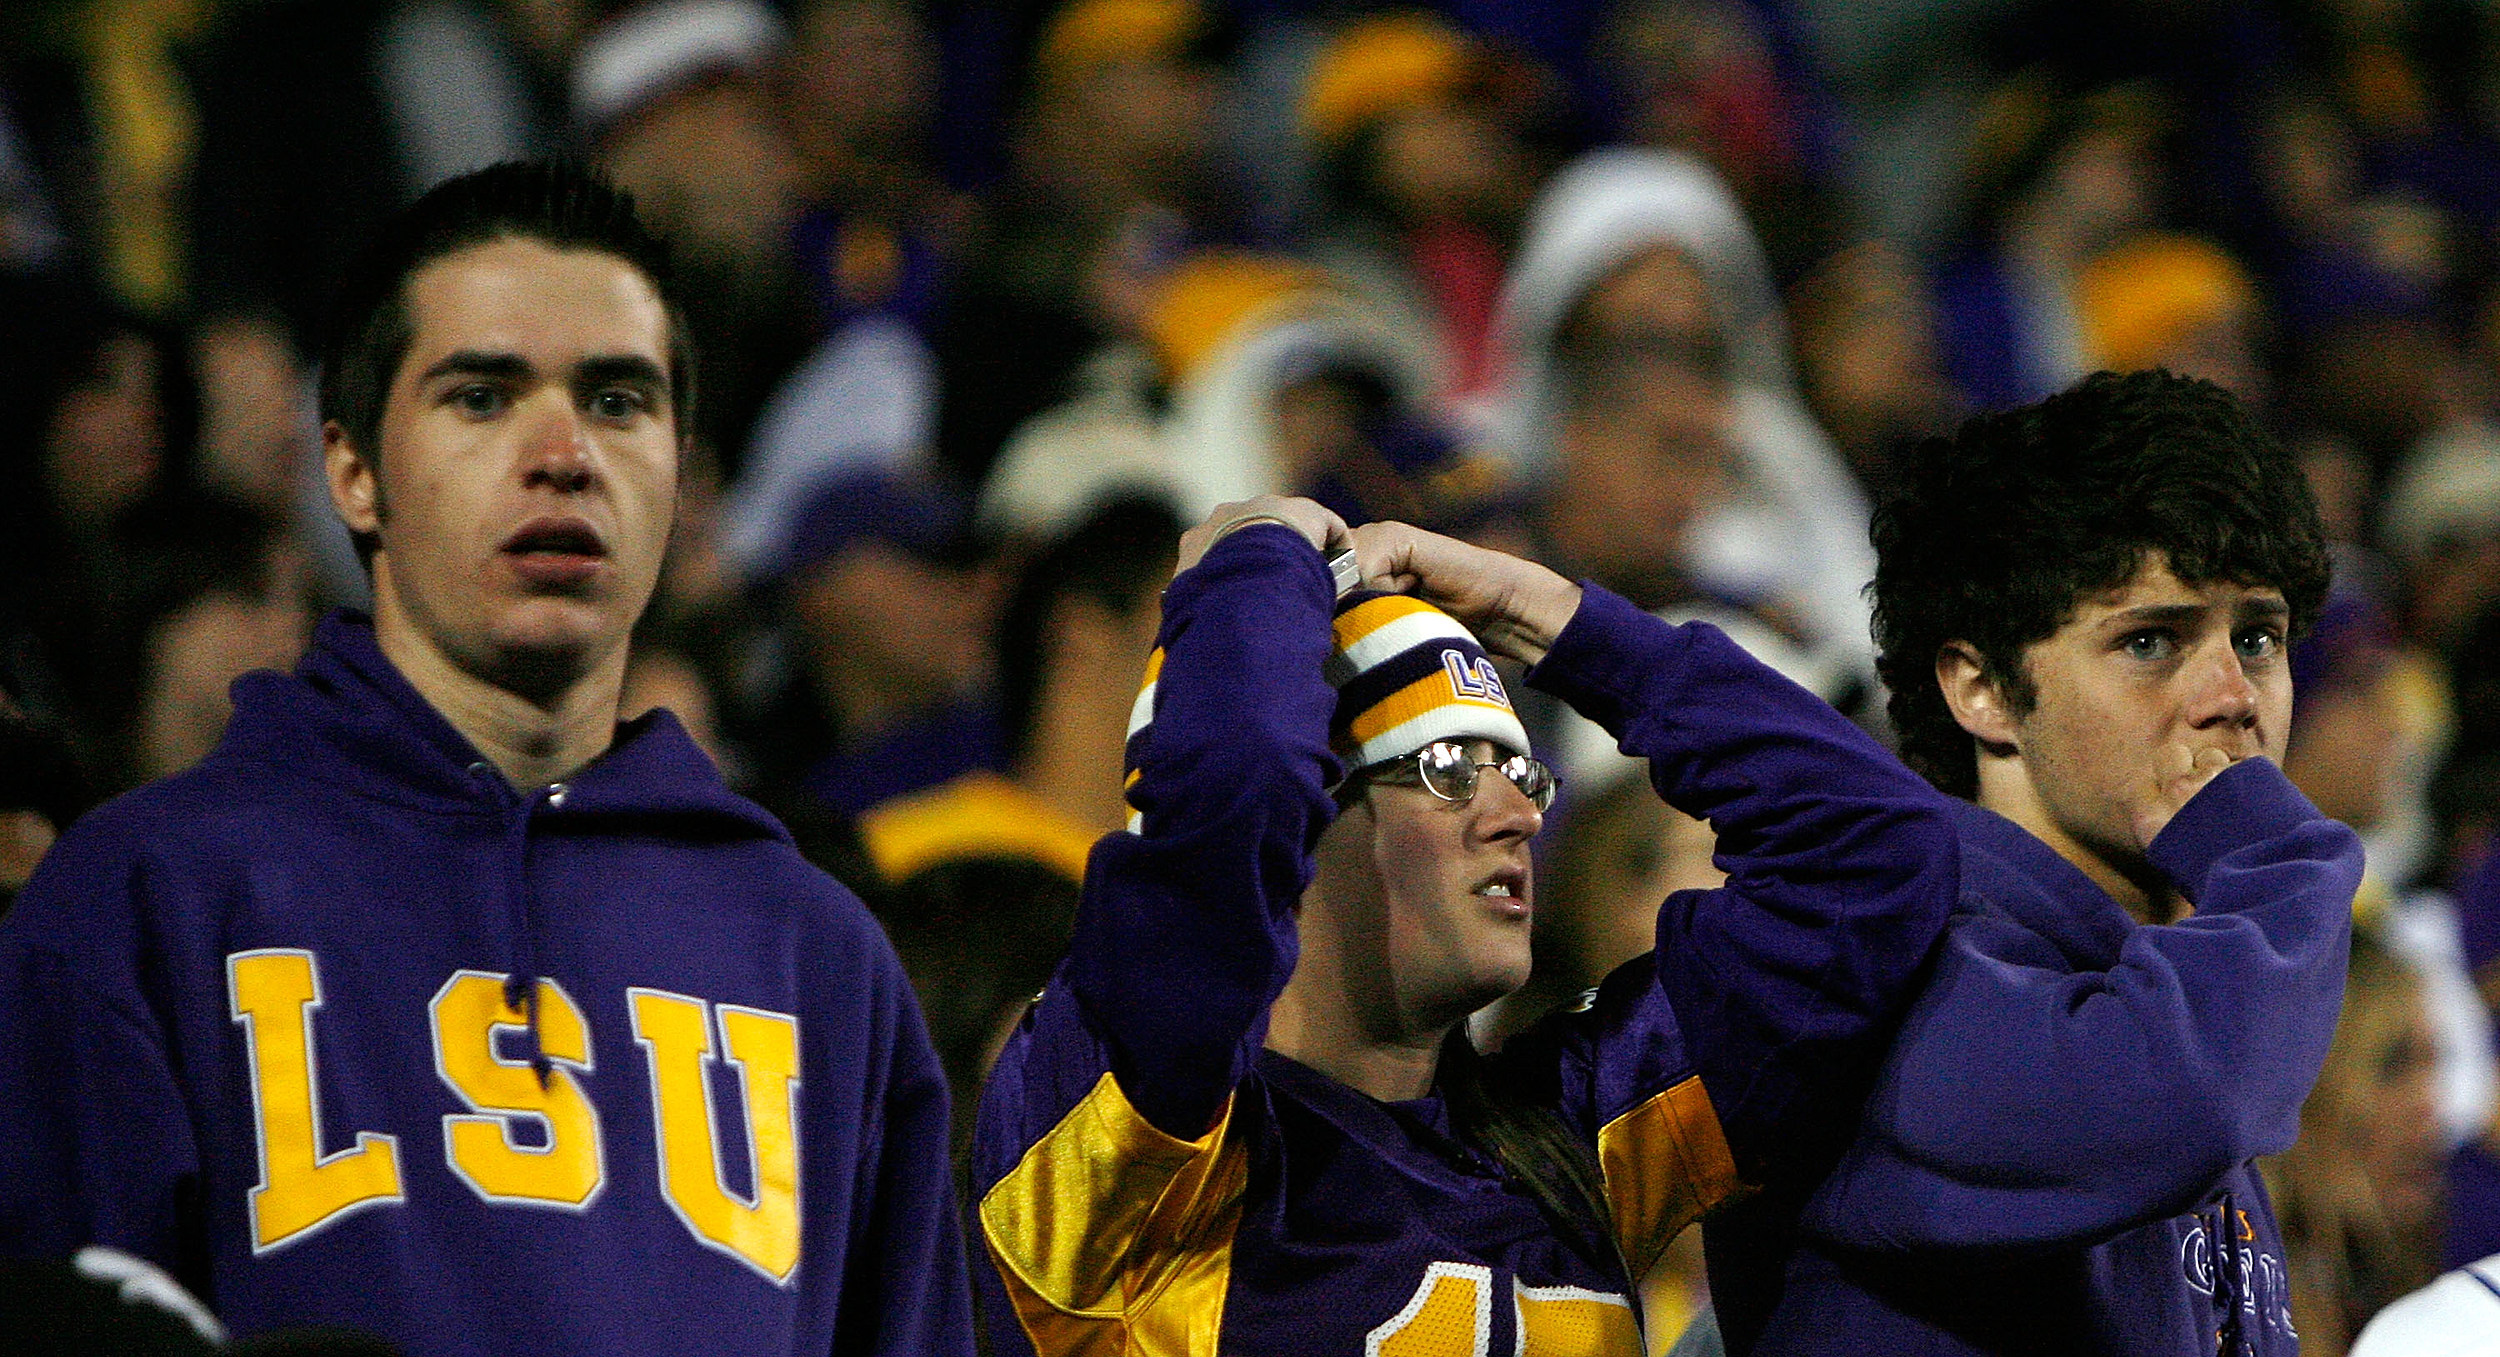 LSU Fans Stunned (Getty Images)